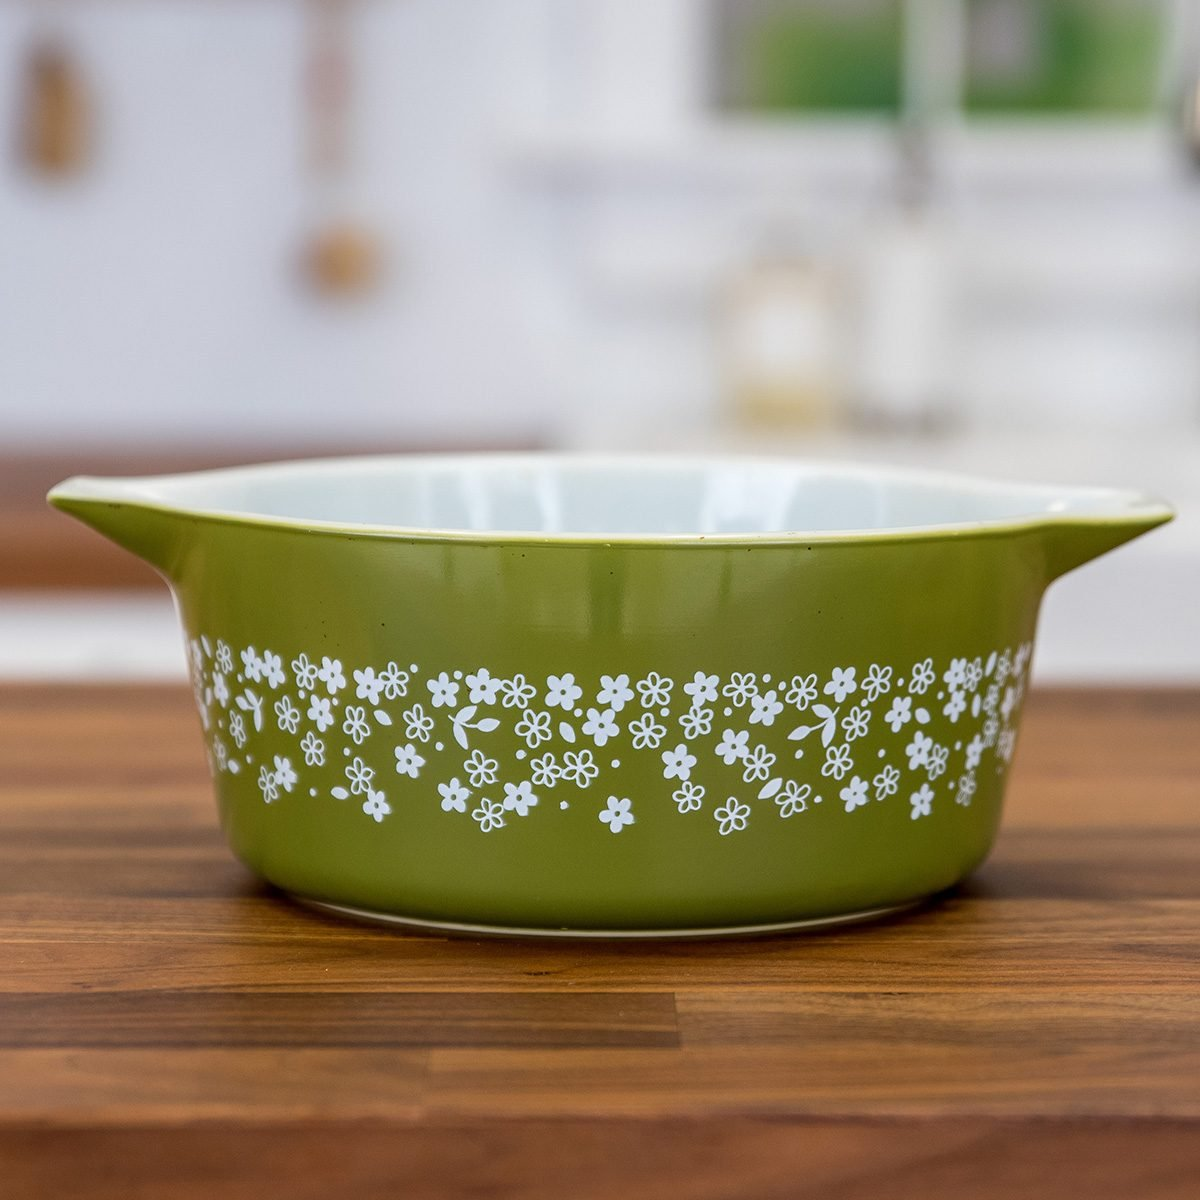 Vintage Pyrex dish in Spring Blossom